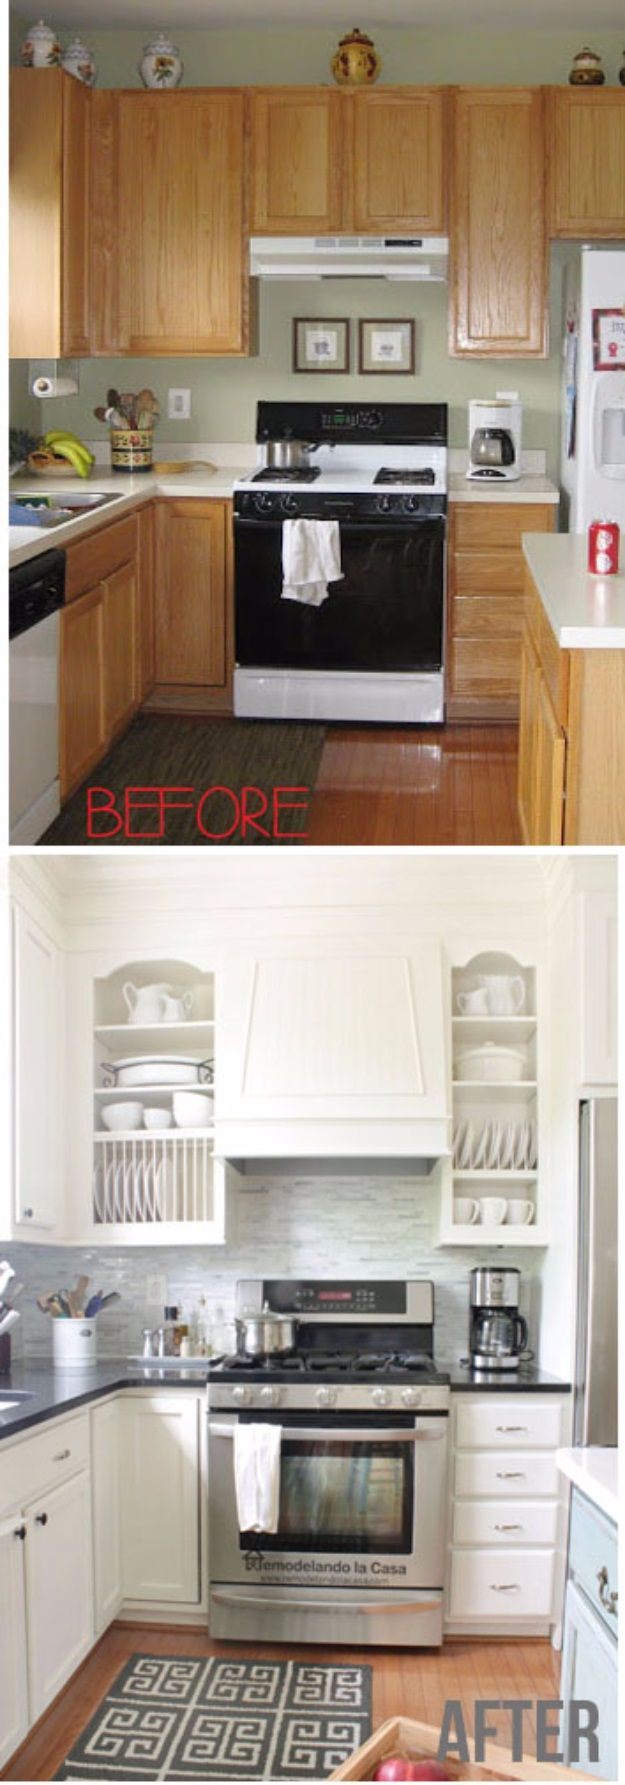 Top 10 Easy Diy Ideas To Upgrade Your Kitchen Now Kitchen Diy Decor Diy Decoration Diy